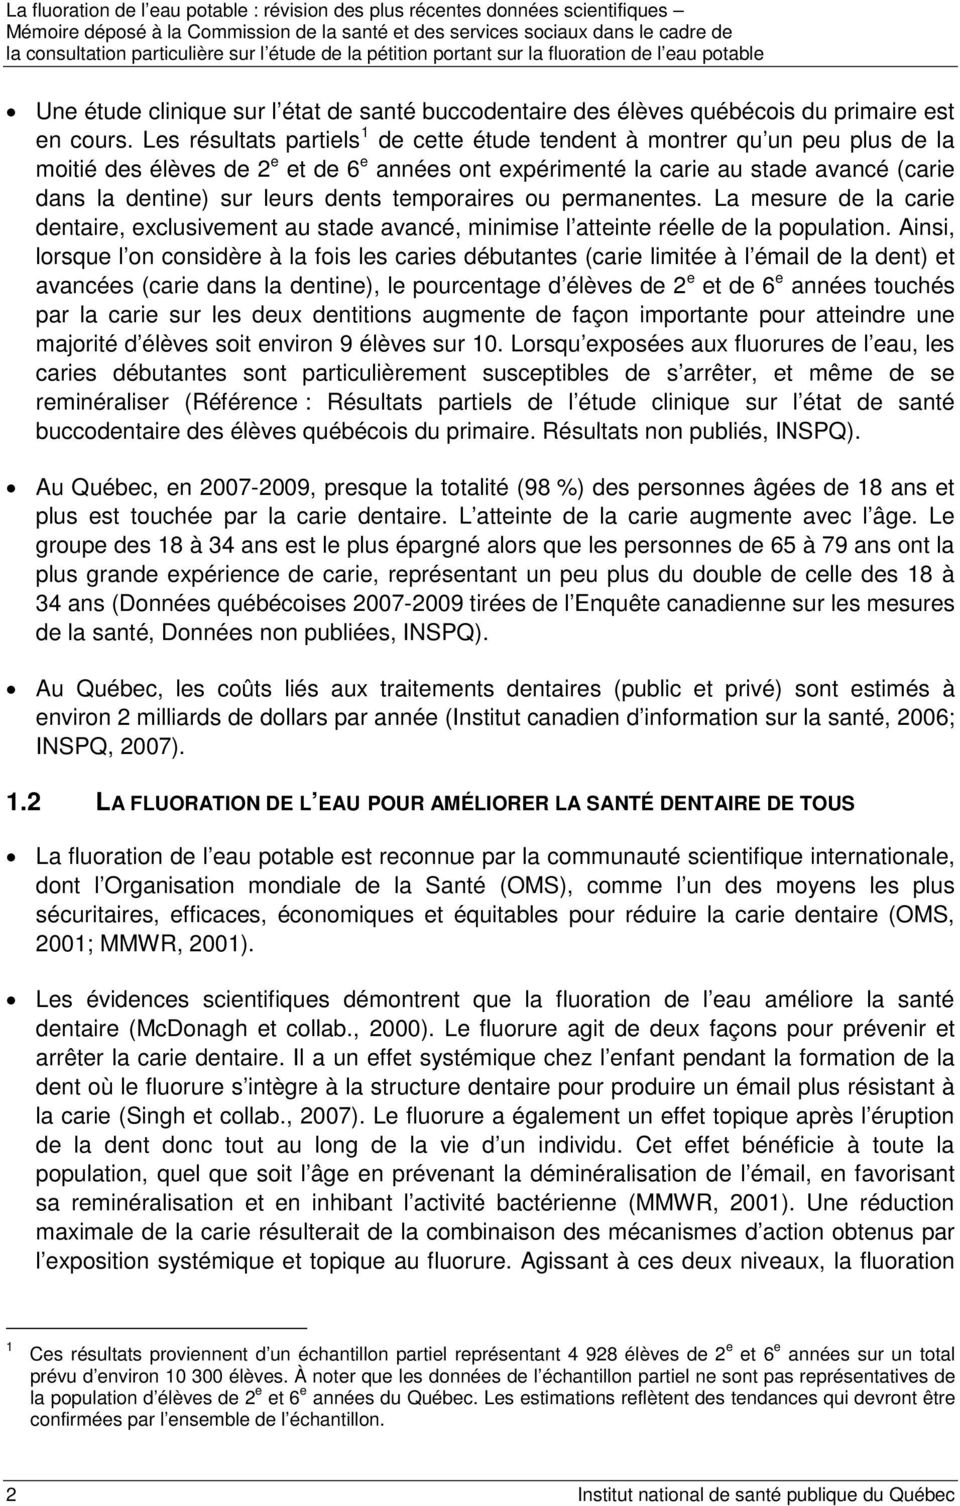 dents temporaires ou permanentes. La mesure de la carie dentaire, exclusivement au stade avancé, minimise l atteinte réelle de la population.